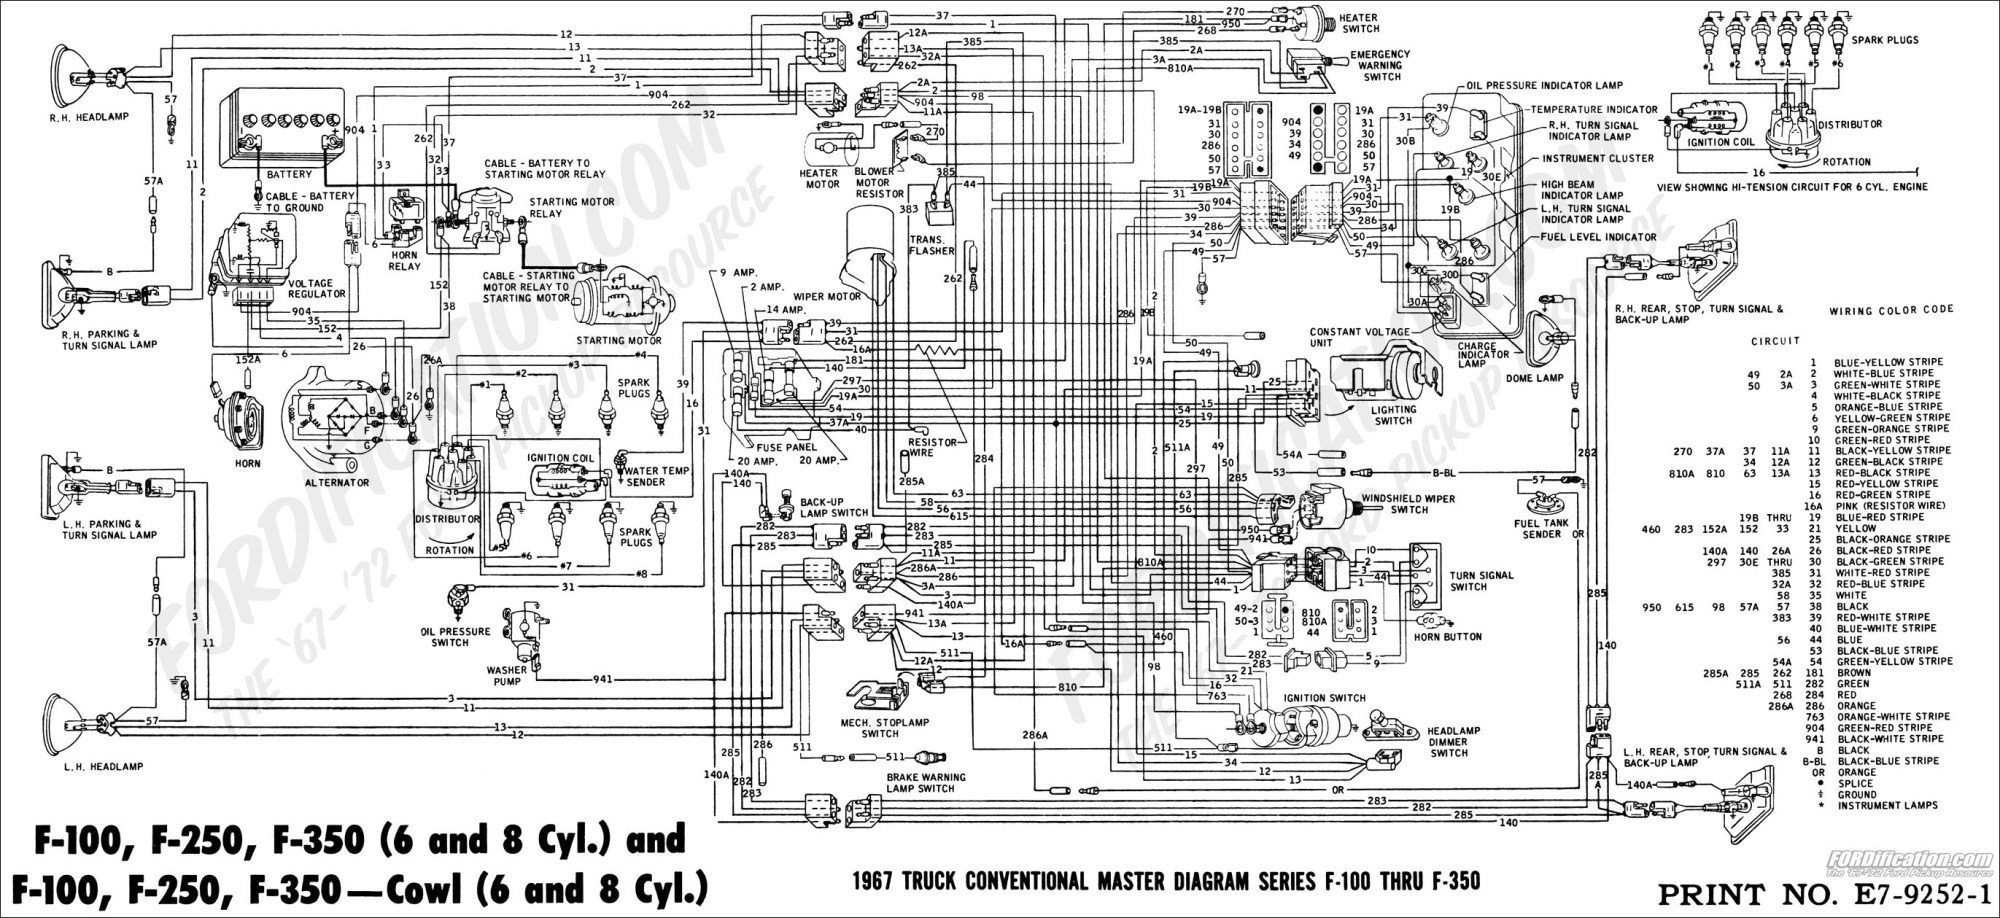 hight resolution of e350 wiring schematic wiring diagram blogs 1992 fleetwood rv wiring diagram 1990 e350 wiring diagram simple